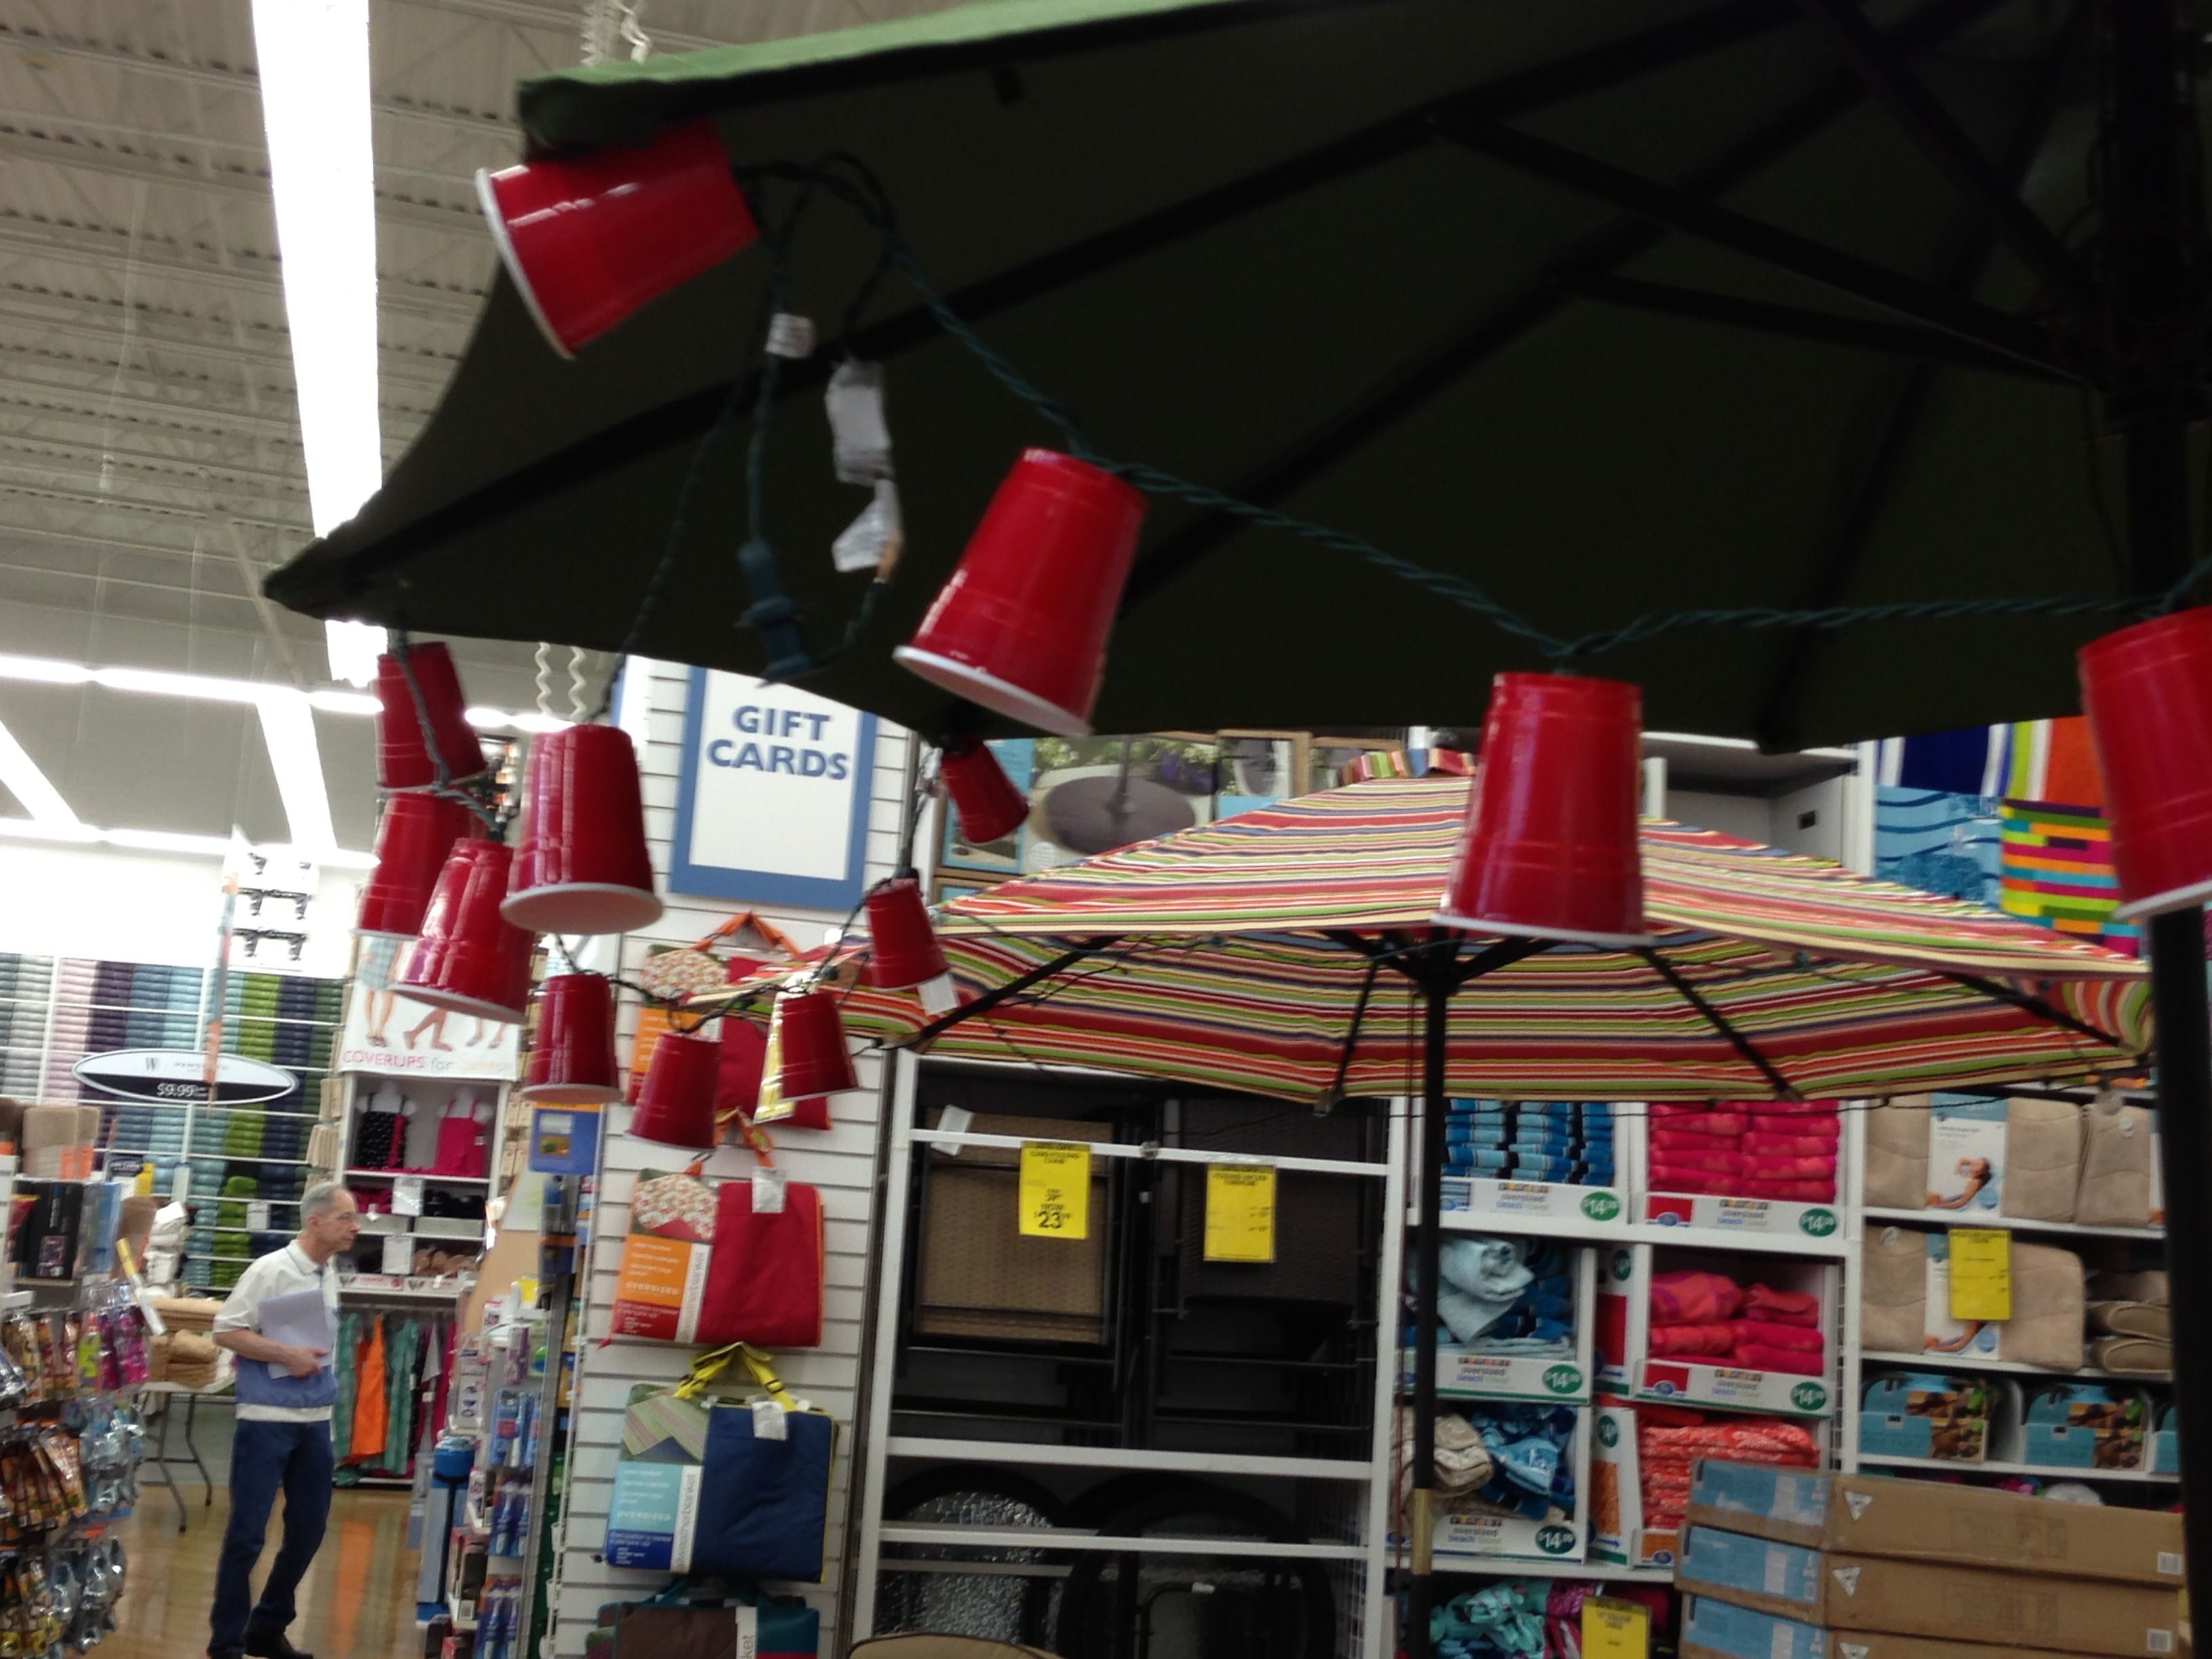 Summer Decor White Christmas Lights In Red Solo Cups